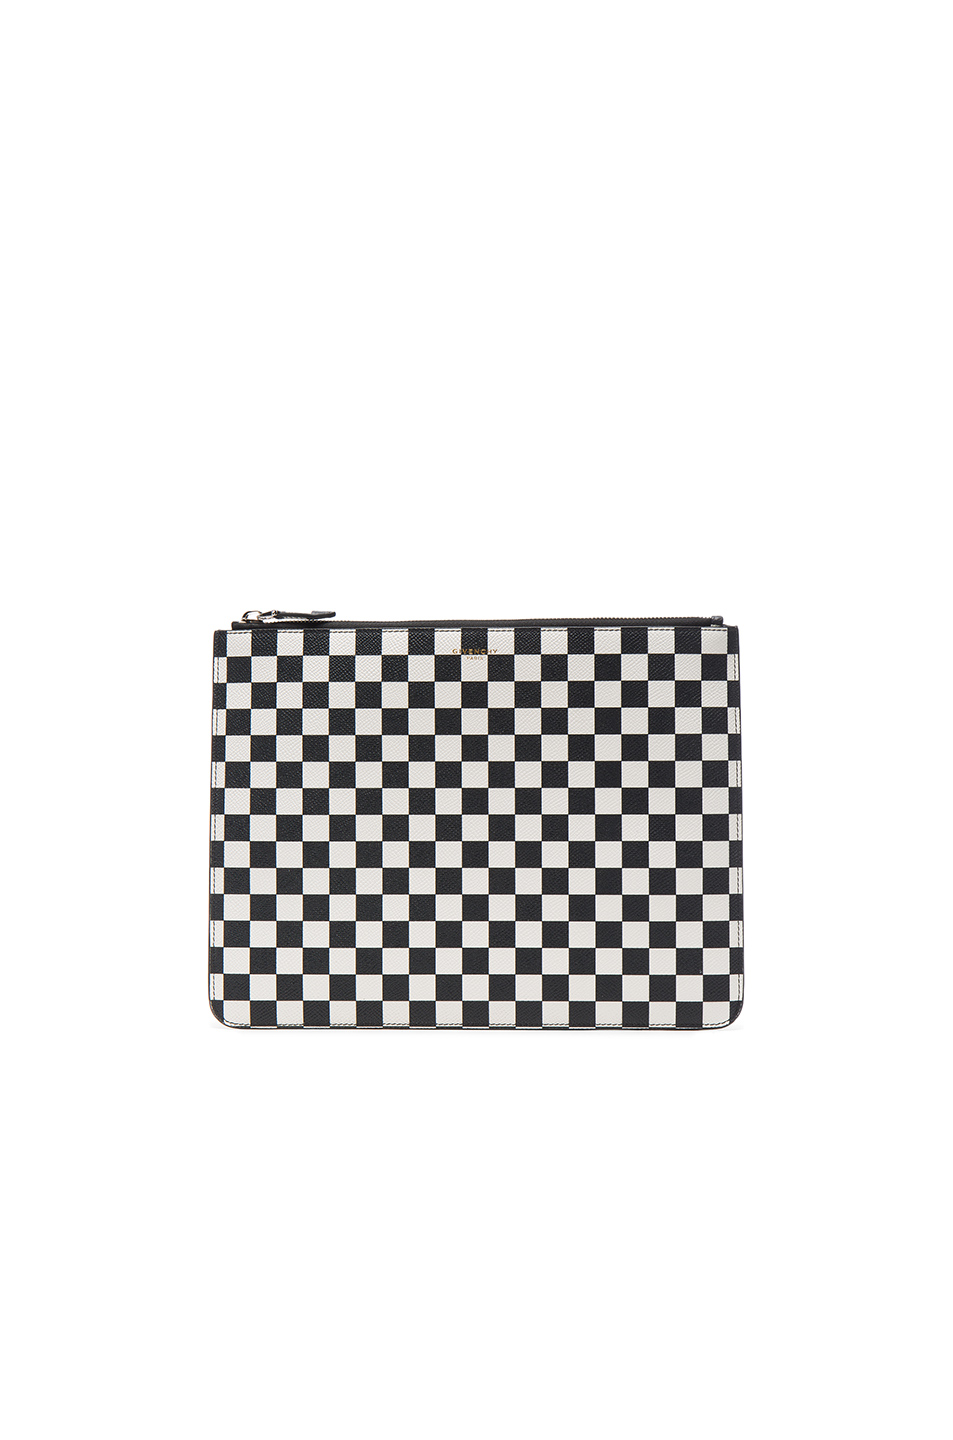 Photo of Givenchy Large Zip Pouch in Black,White,Checkered & Plaid - shop Givenchy menswear